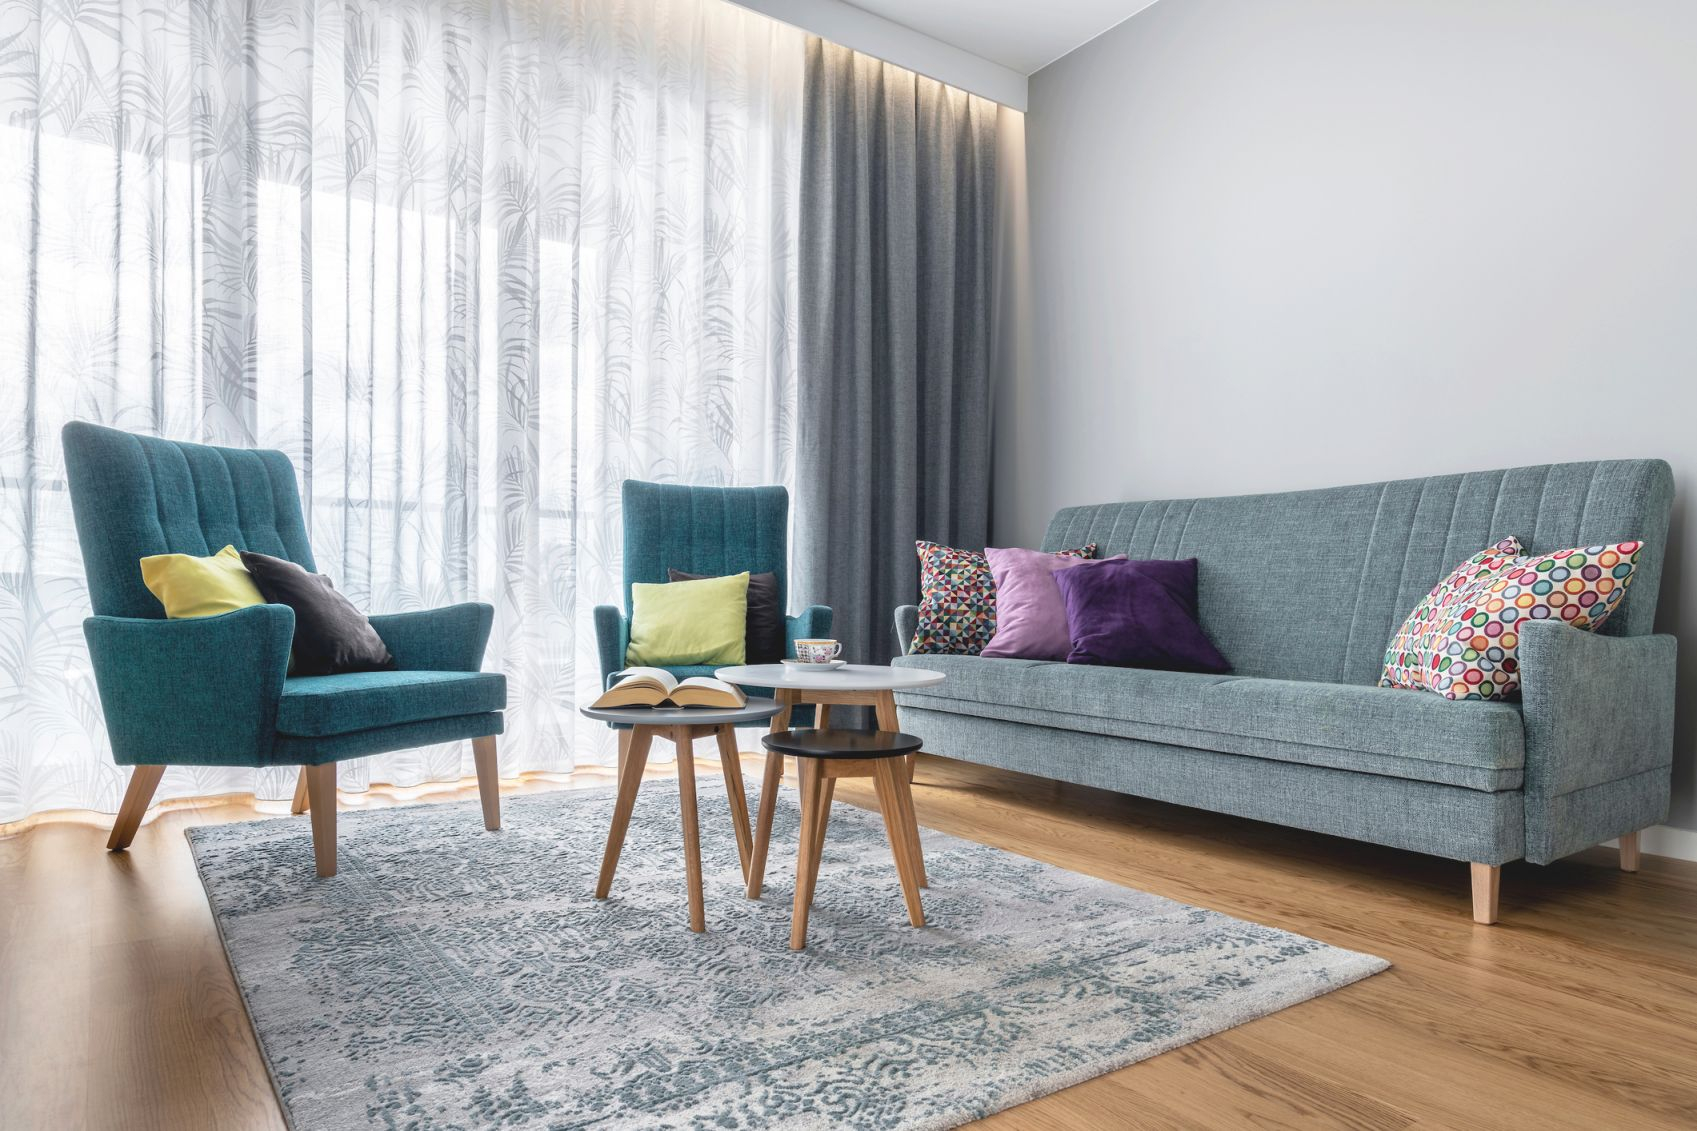 New Apartment Decorating Ideas To Set Up Your Place From Scratch for 13+ Unique Ideas For Decorating A Small Living Room On A Budget